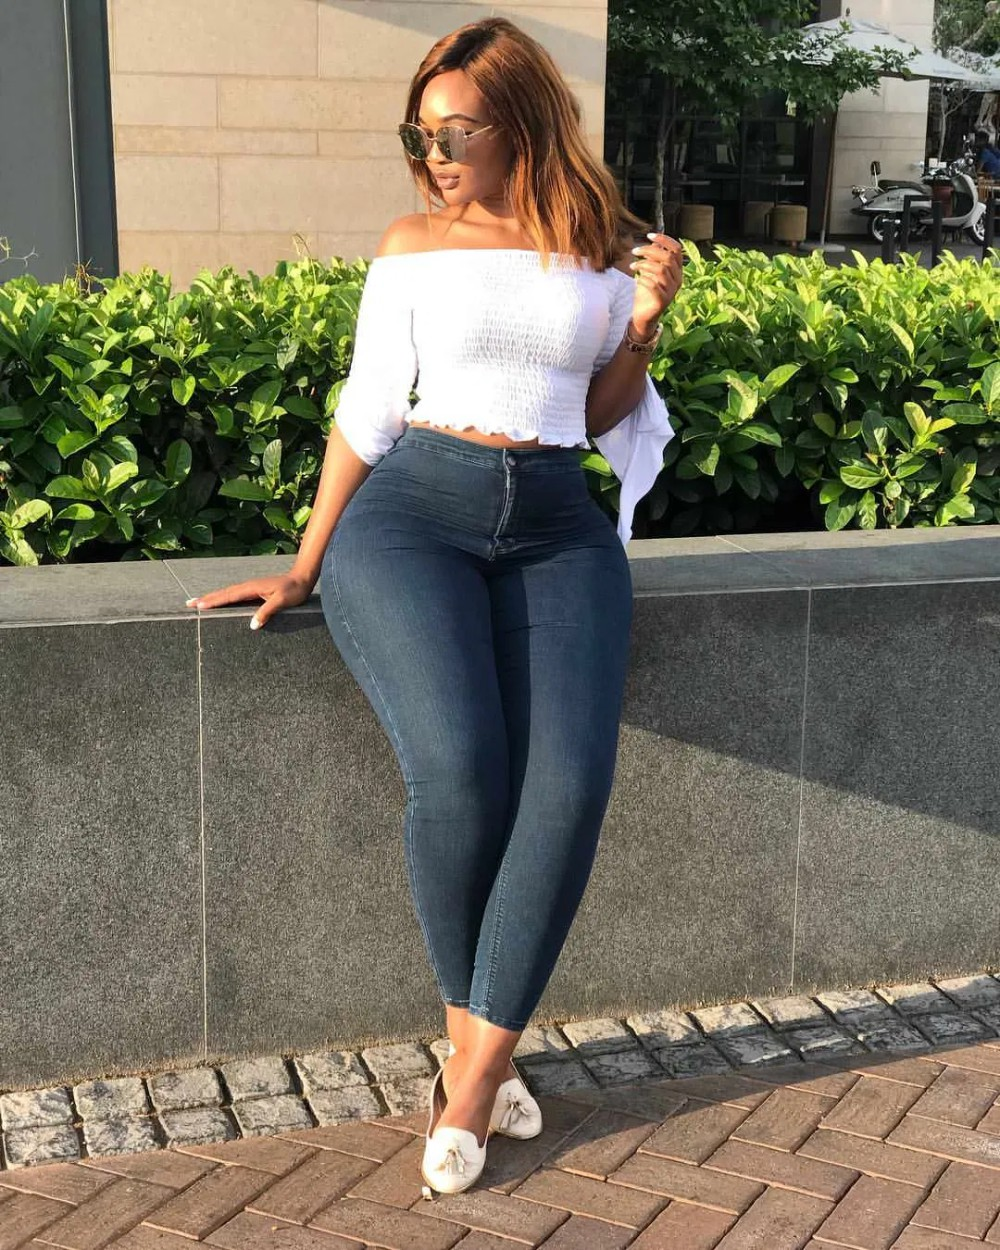 Casual Black Girls In Tight Jeans